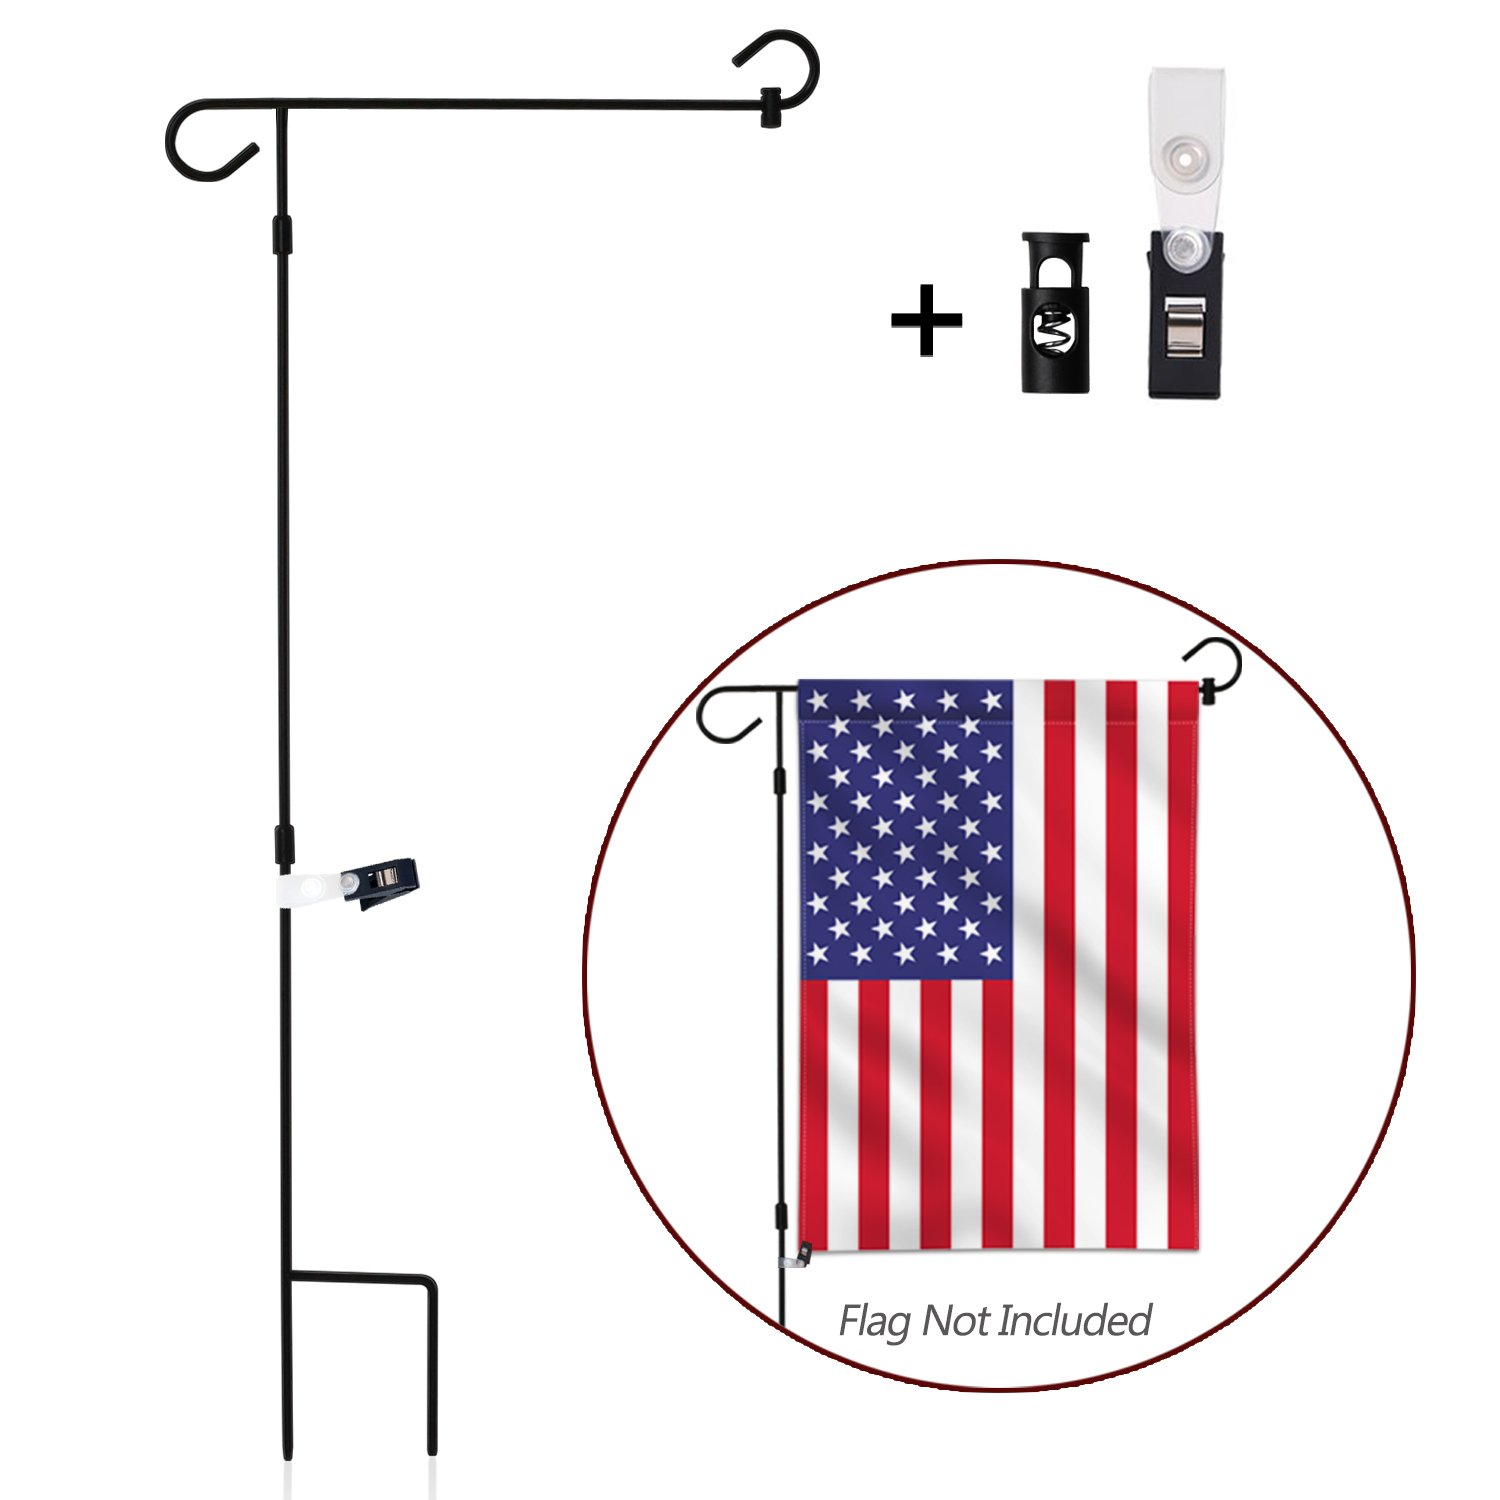 Anley |Garden Flag Stand| Premium Wrought Iron Garden Flag Pole Holder - Weather Resistant Black Matte Coating - Easy Assemble - FREE Flag Stopper and Anti-Wind Clip - 38 x 15 Inch